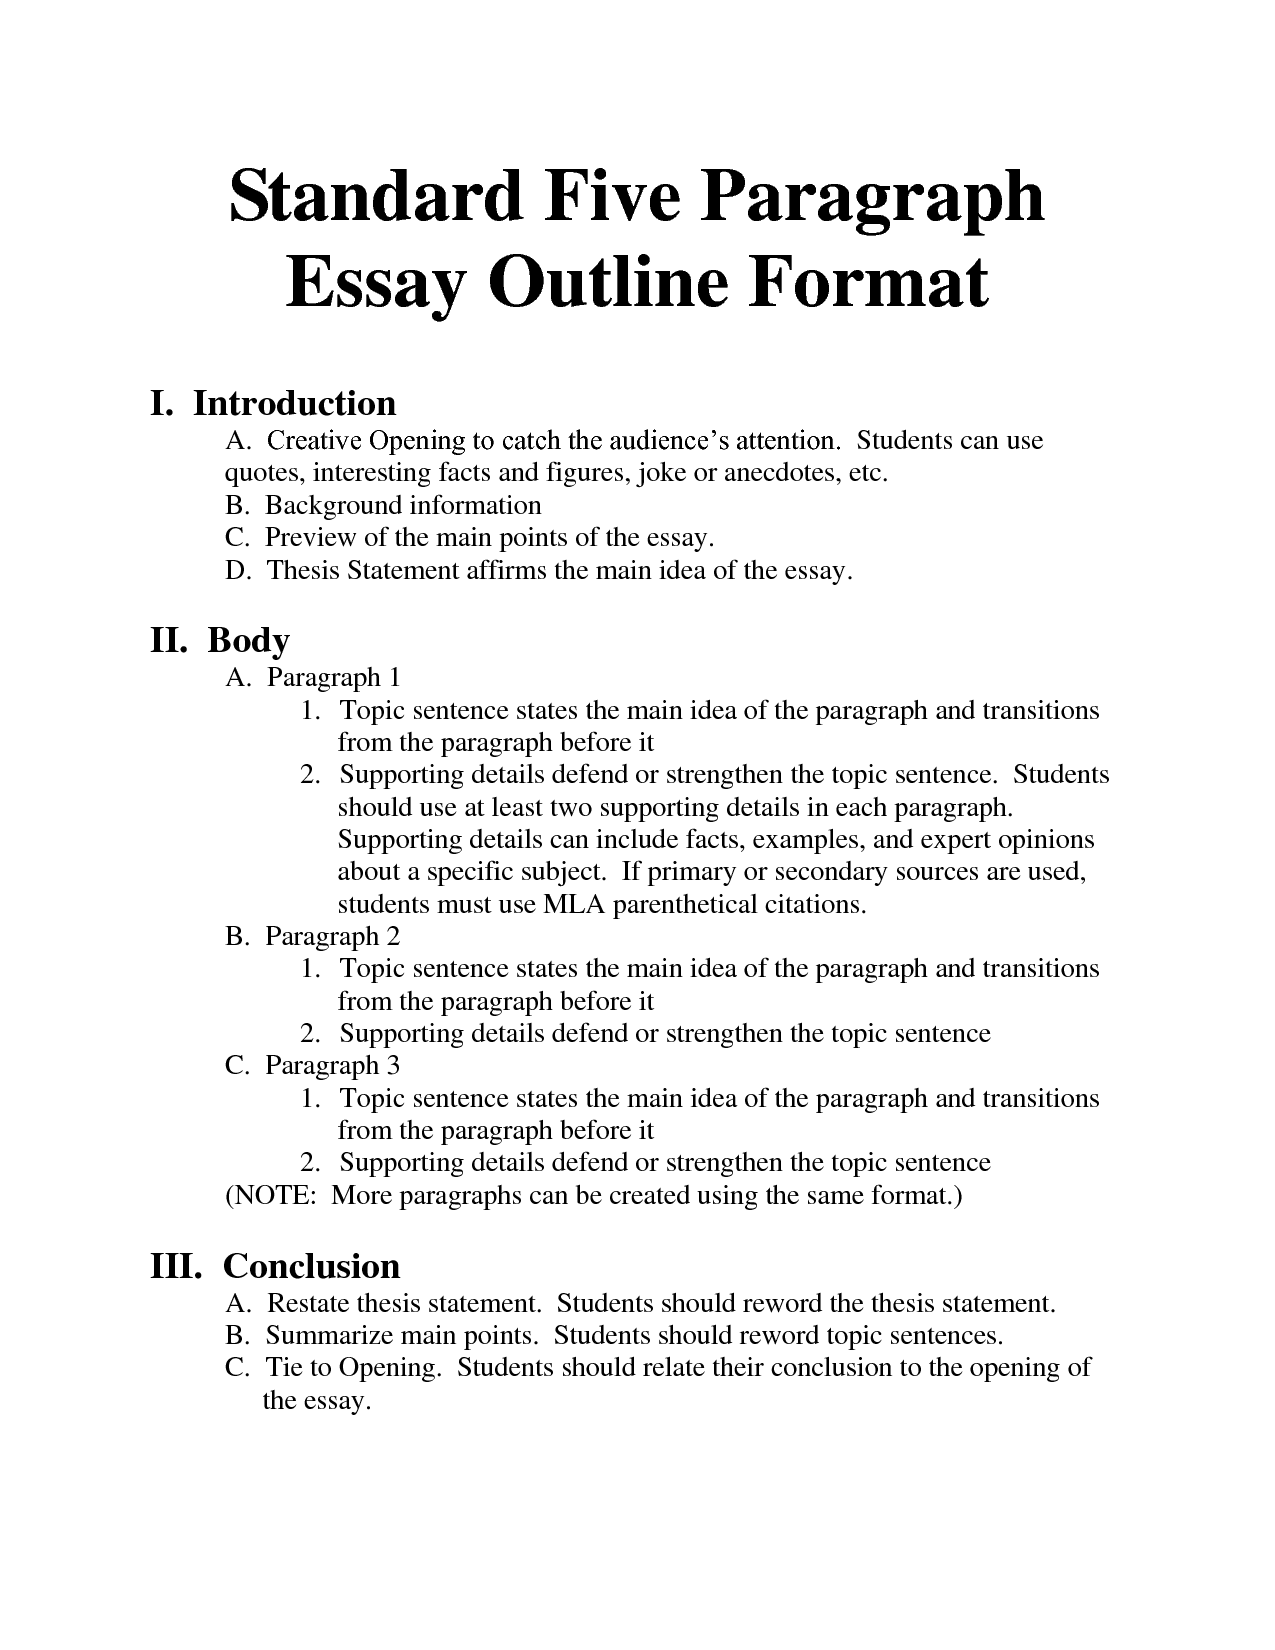 Sample High School Essays  Thesis Support Essay also Essay For English Language Standard Essay Format  Bing Images  Essays Homeschool  Thesis Statement Essays